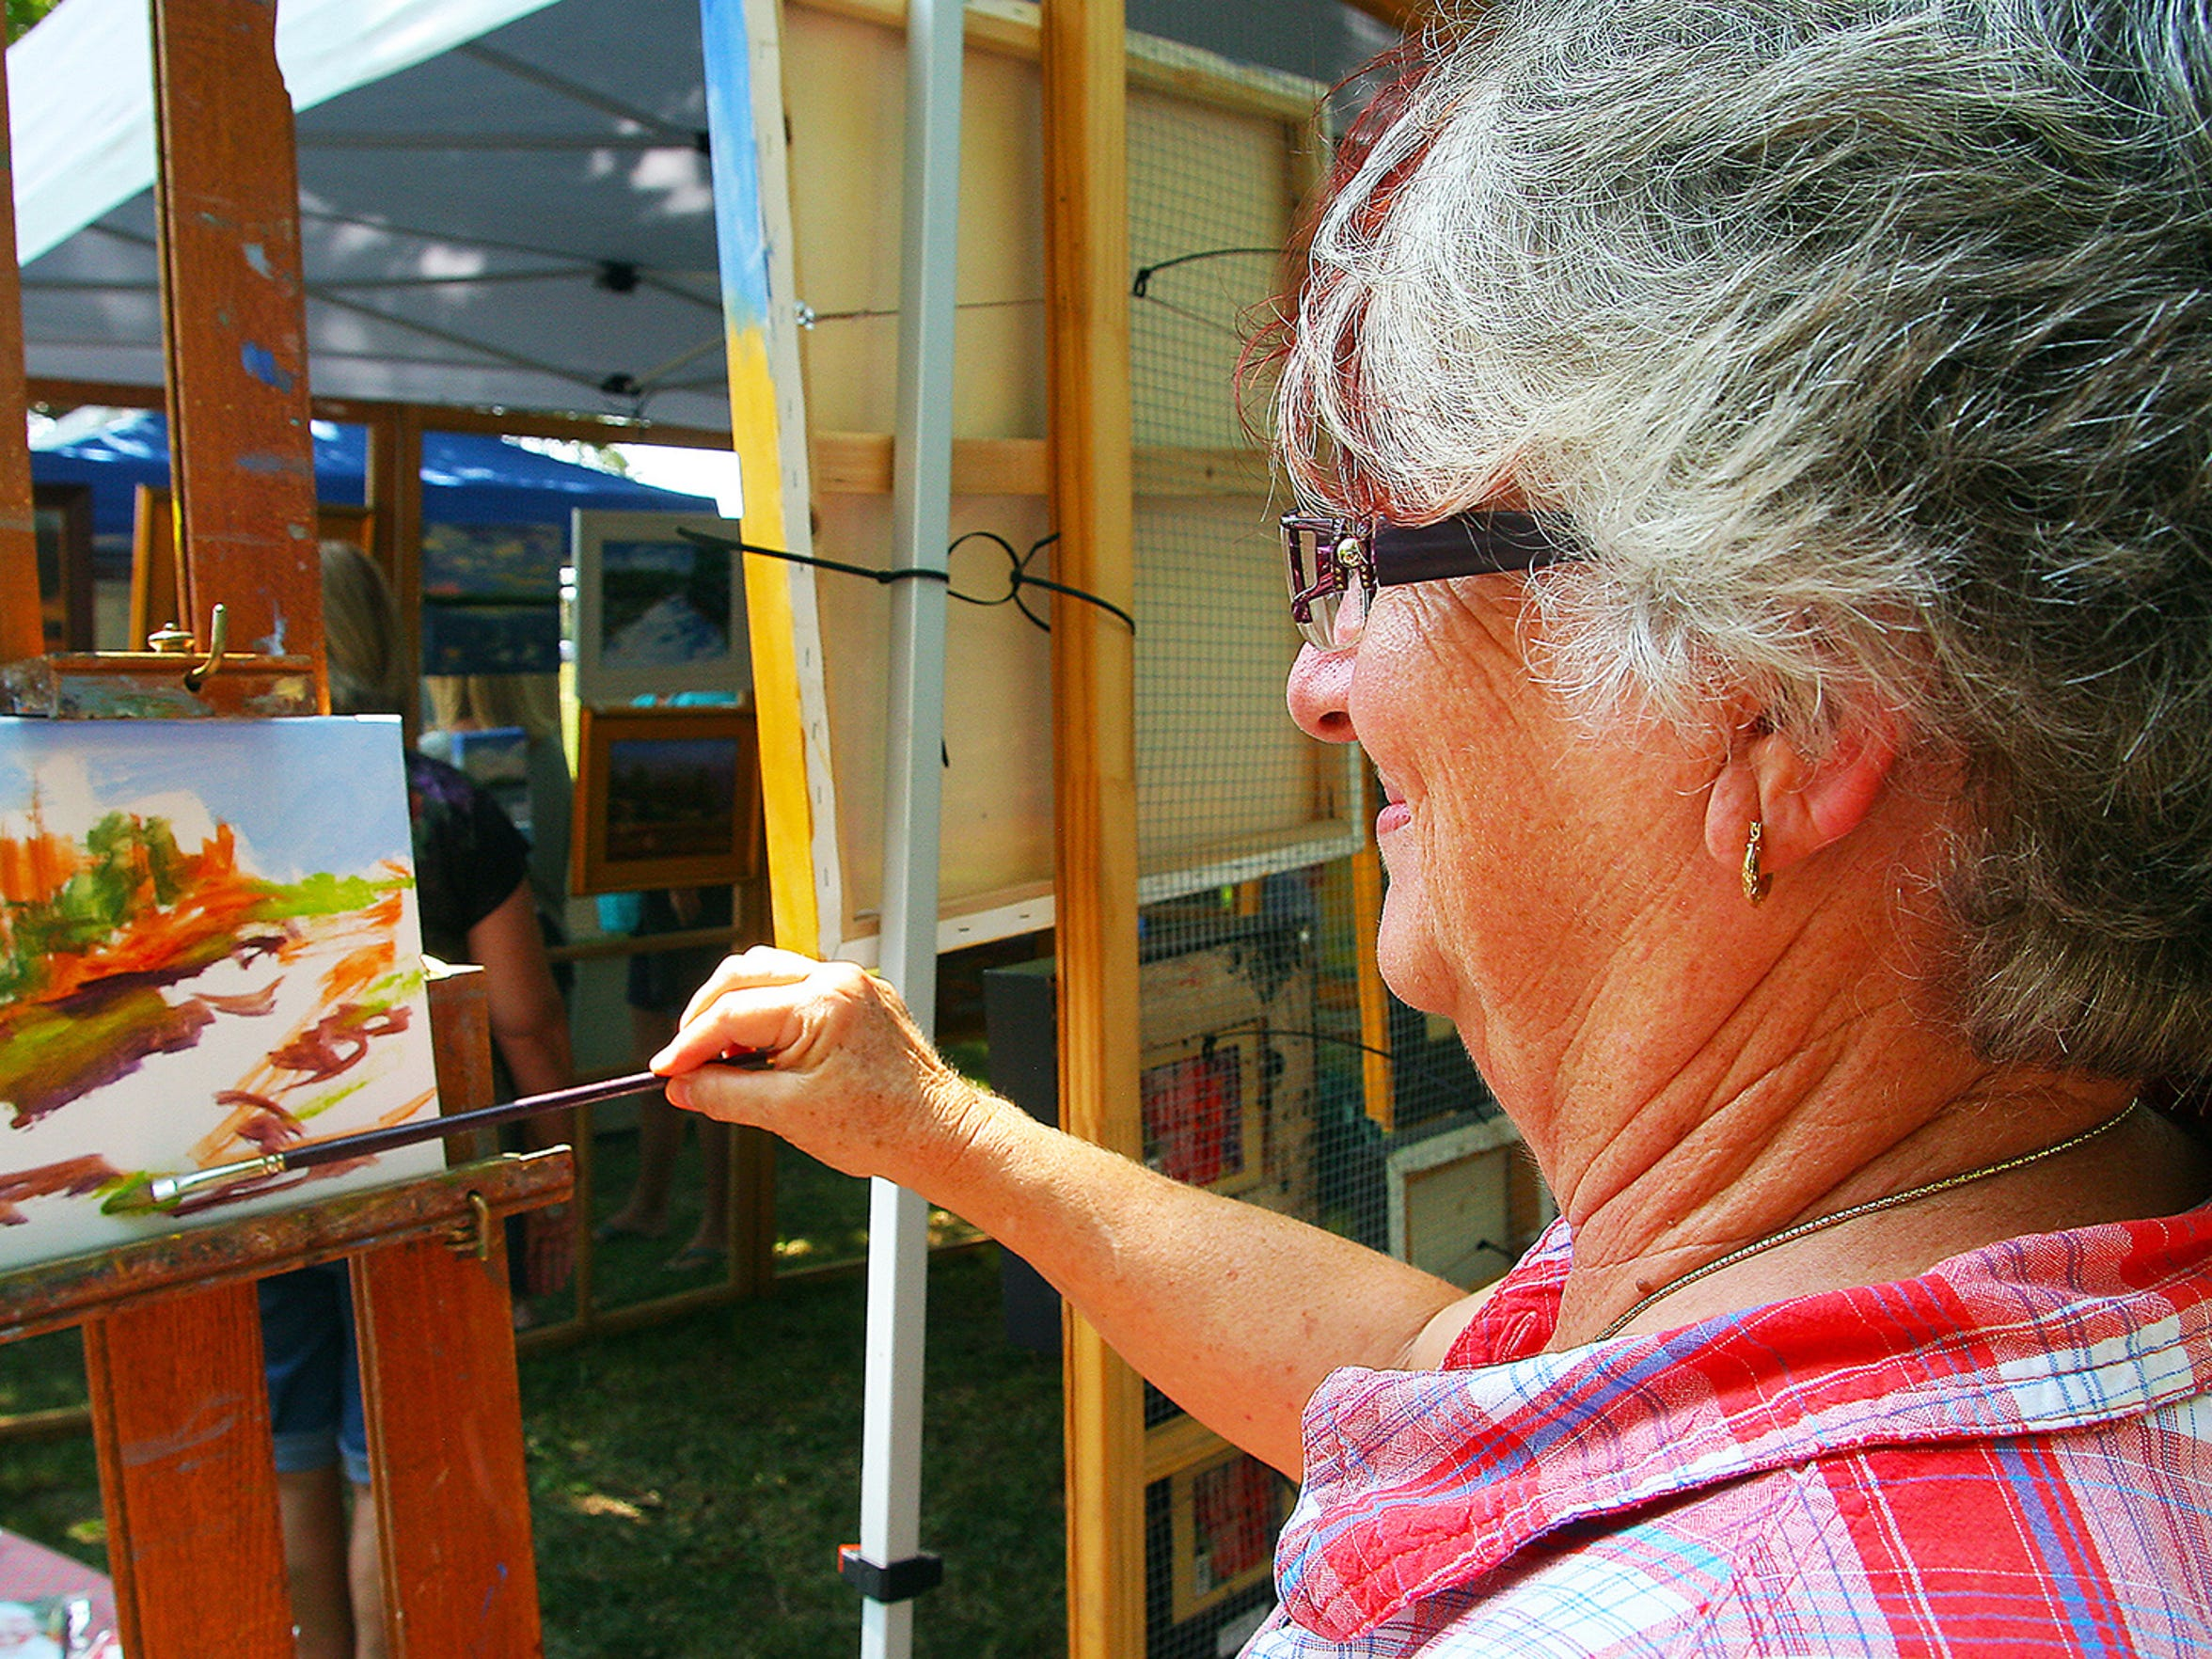 Carole Berning works on a painting at her booth at the Greenway Art Festival held at Old Fort Park.